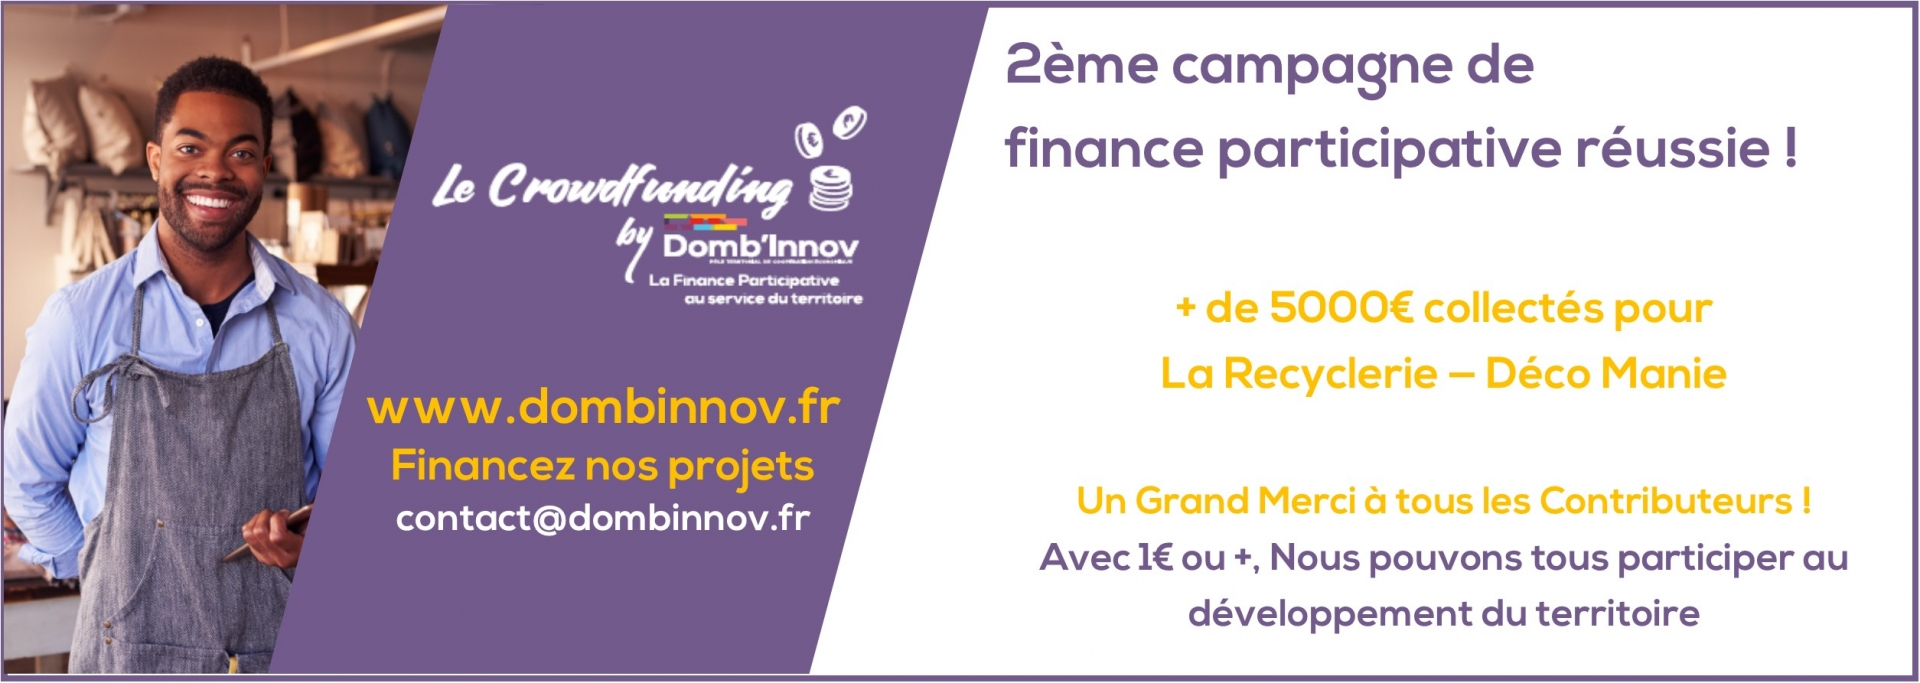 2eme campagne reussie crowdfunding by Dombinnov